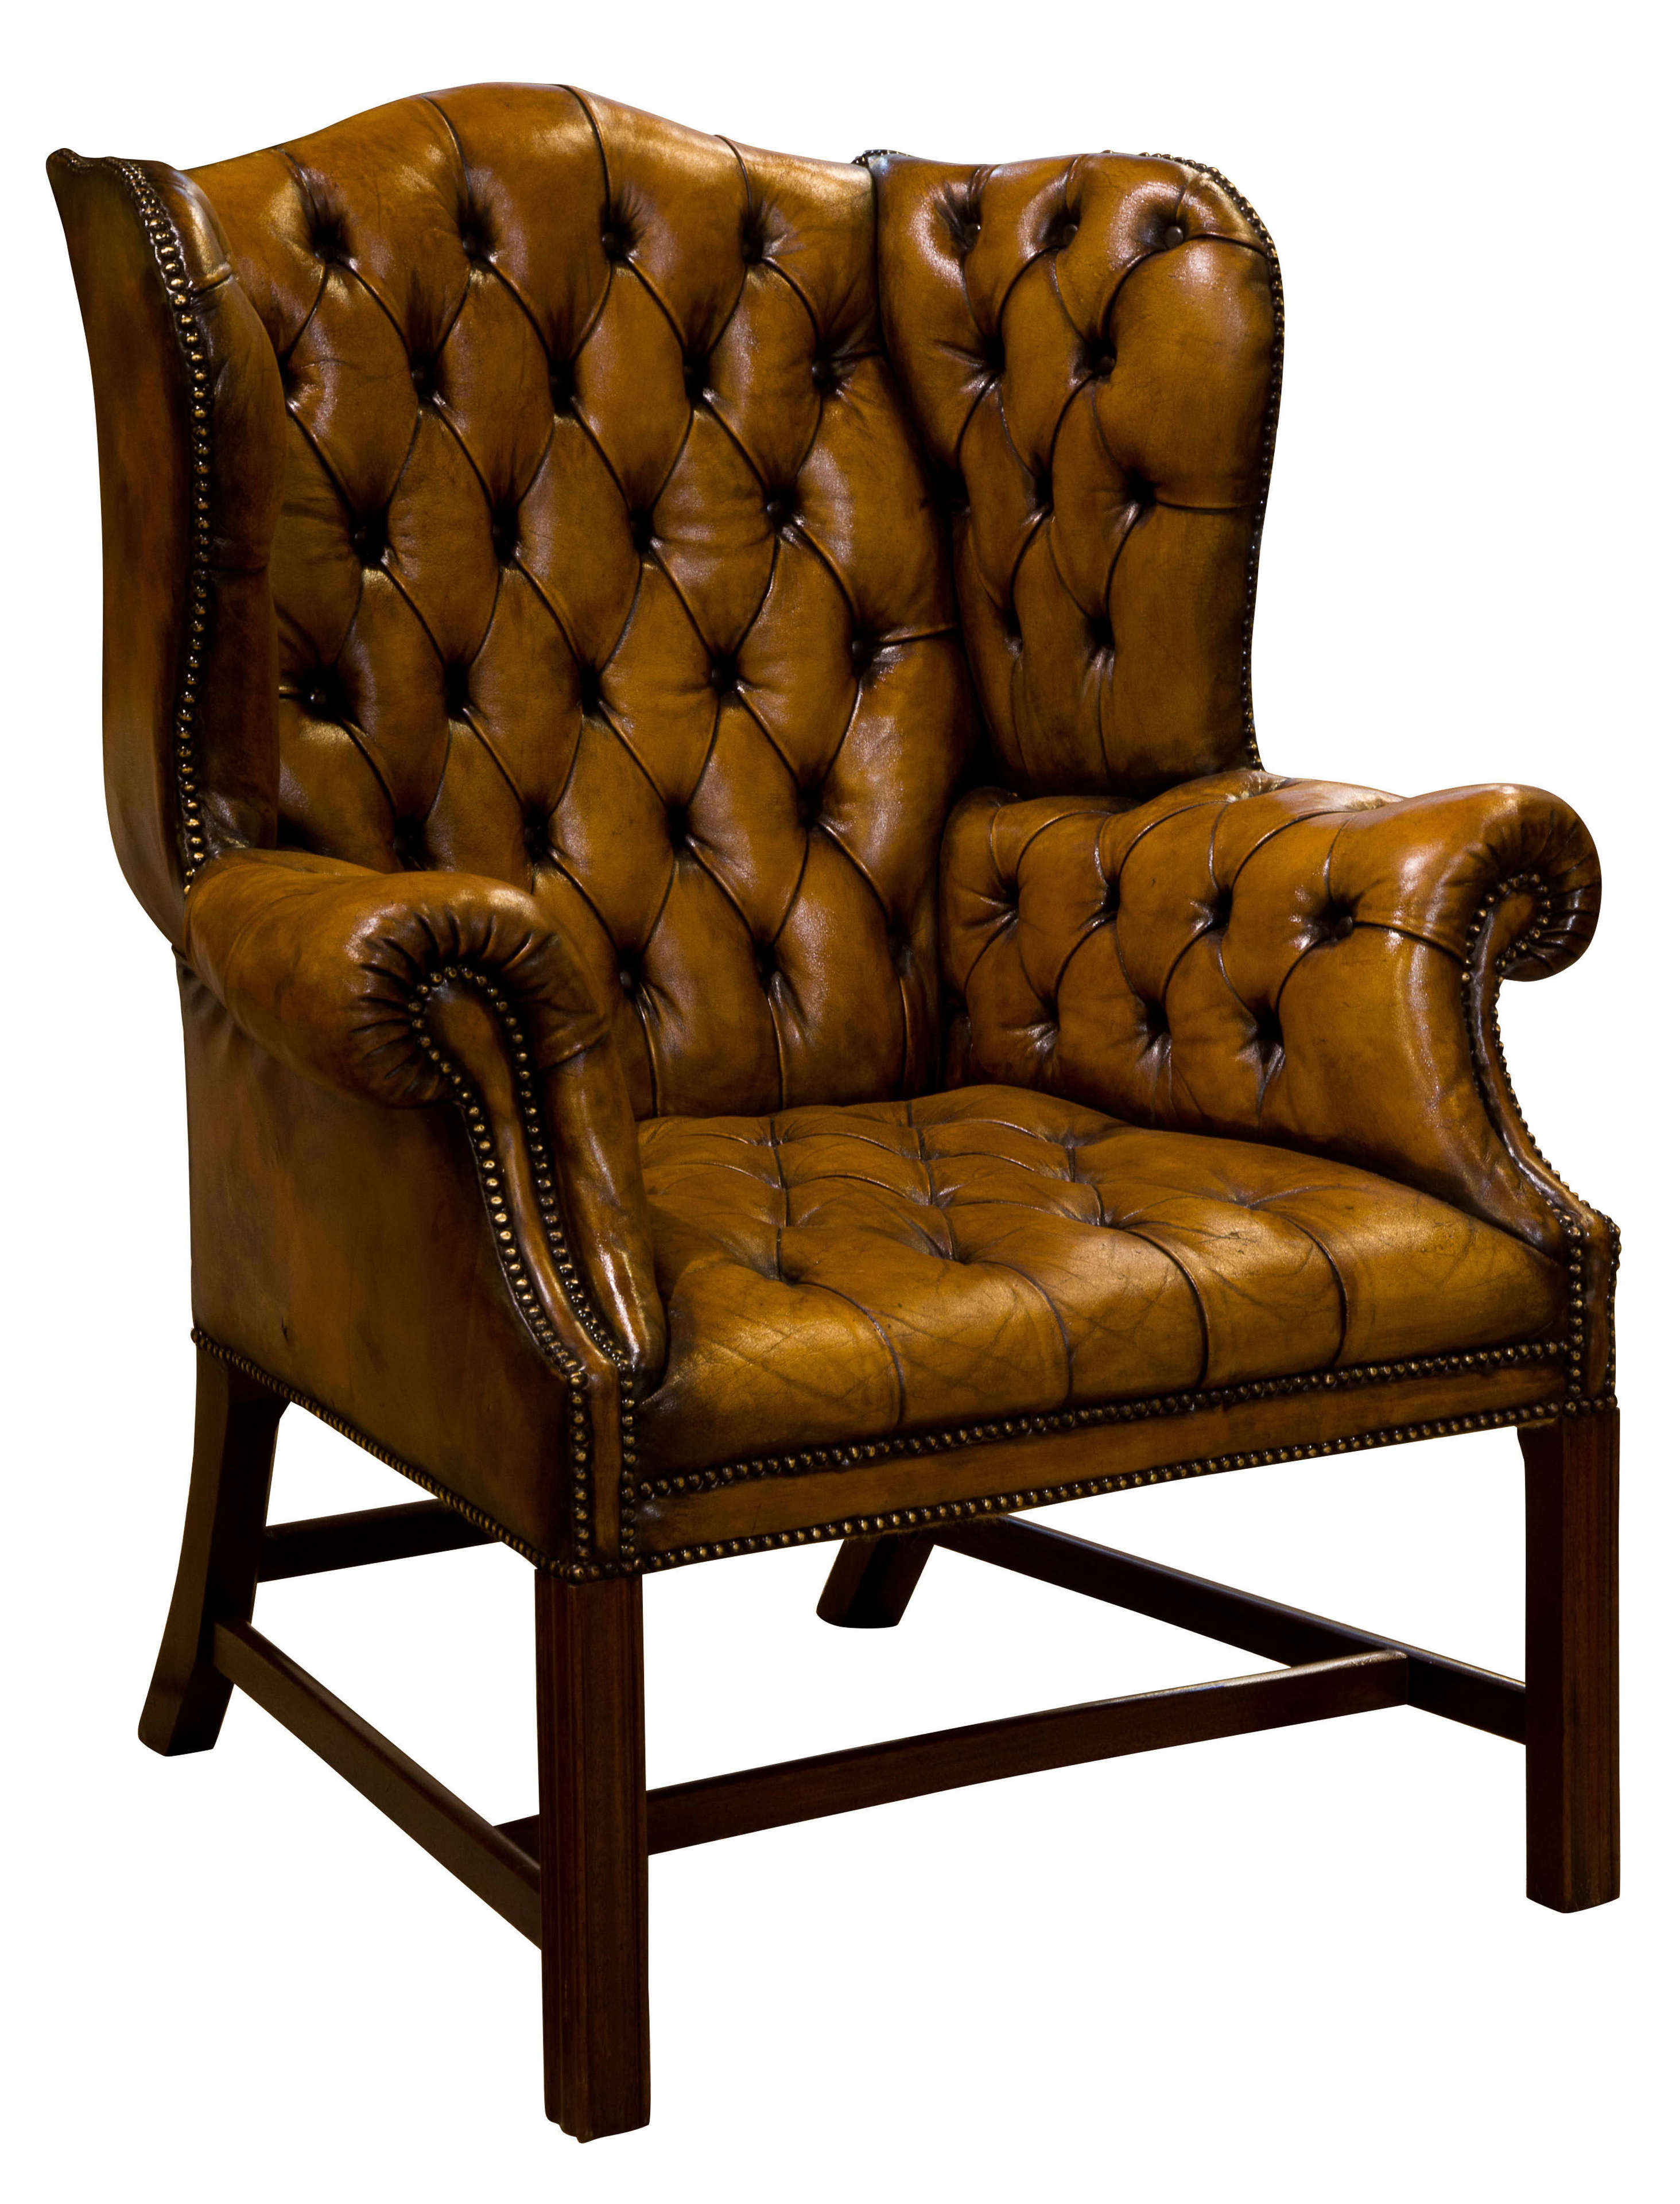 18thc Style Leather Wing Chair c1900